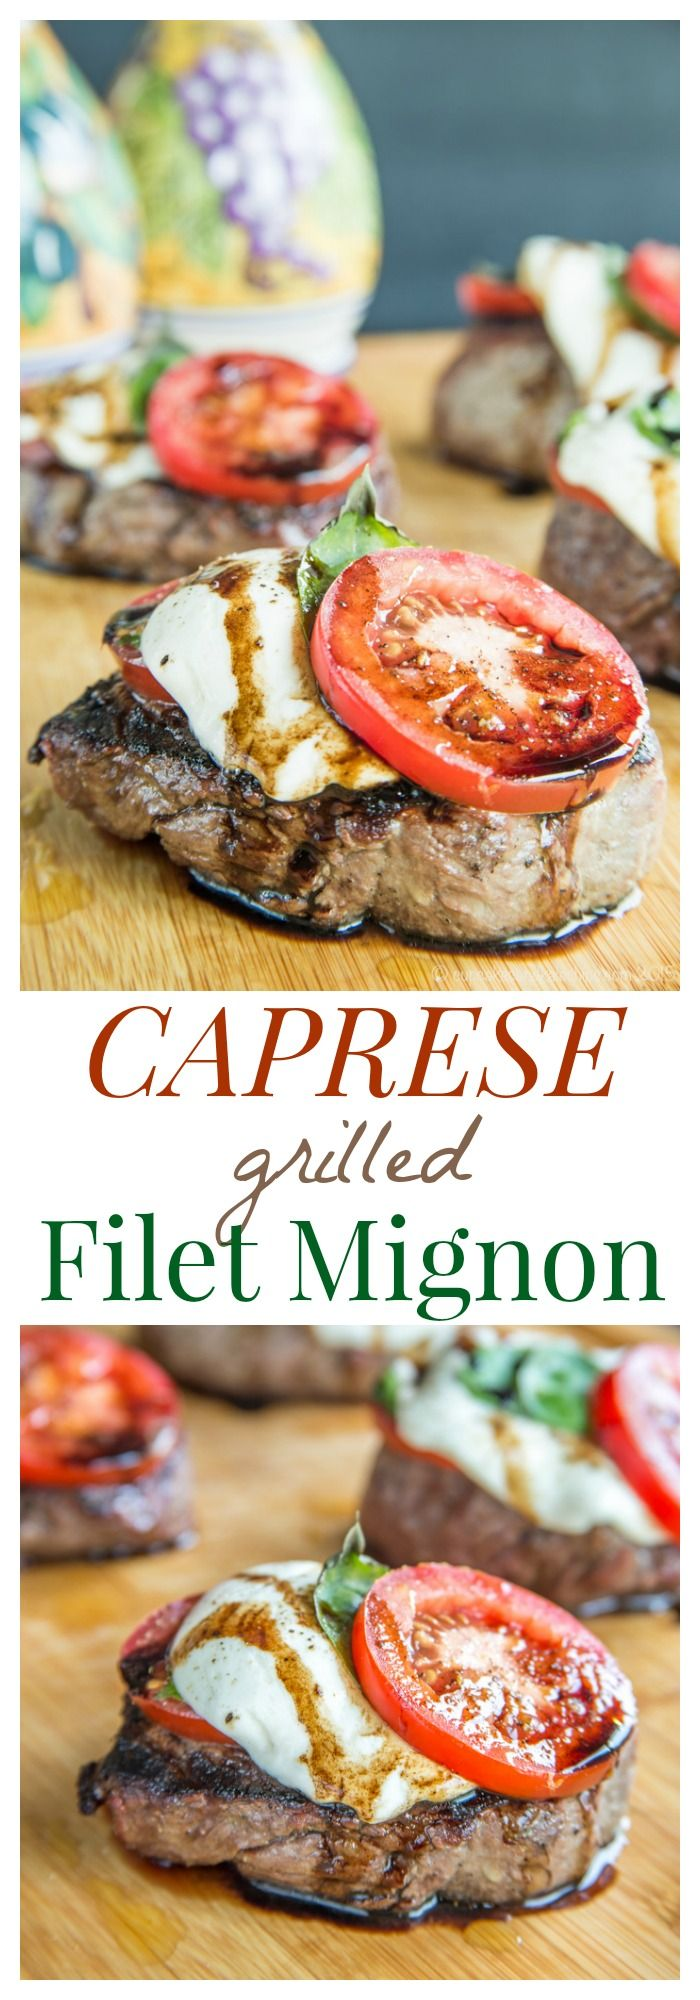 Caprese Grilled Filet Mignon - top perfectly grilled steaks with the classic salad of tomatoes, fresh mozzarella, and basil